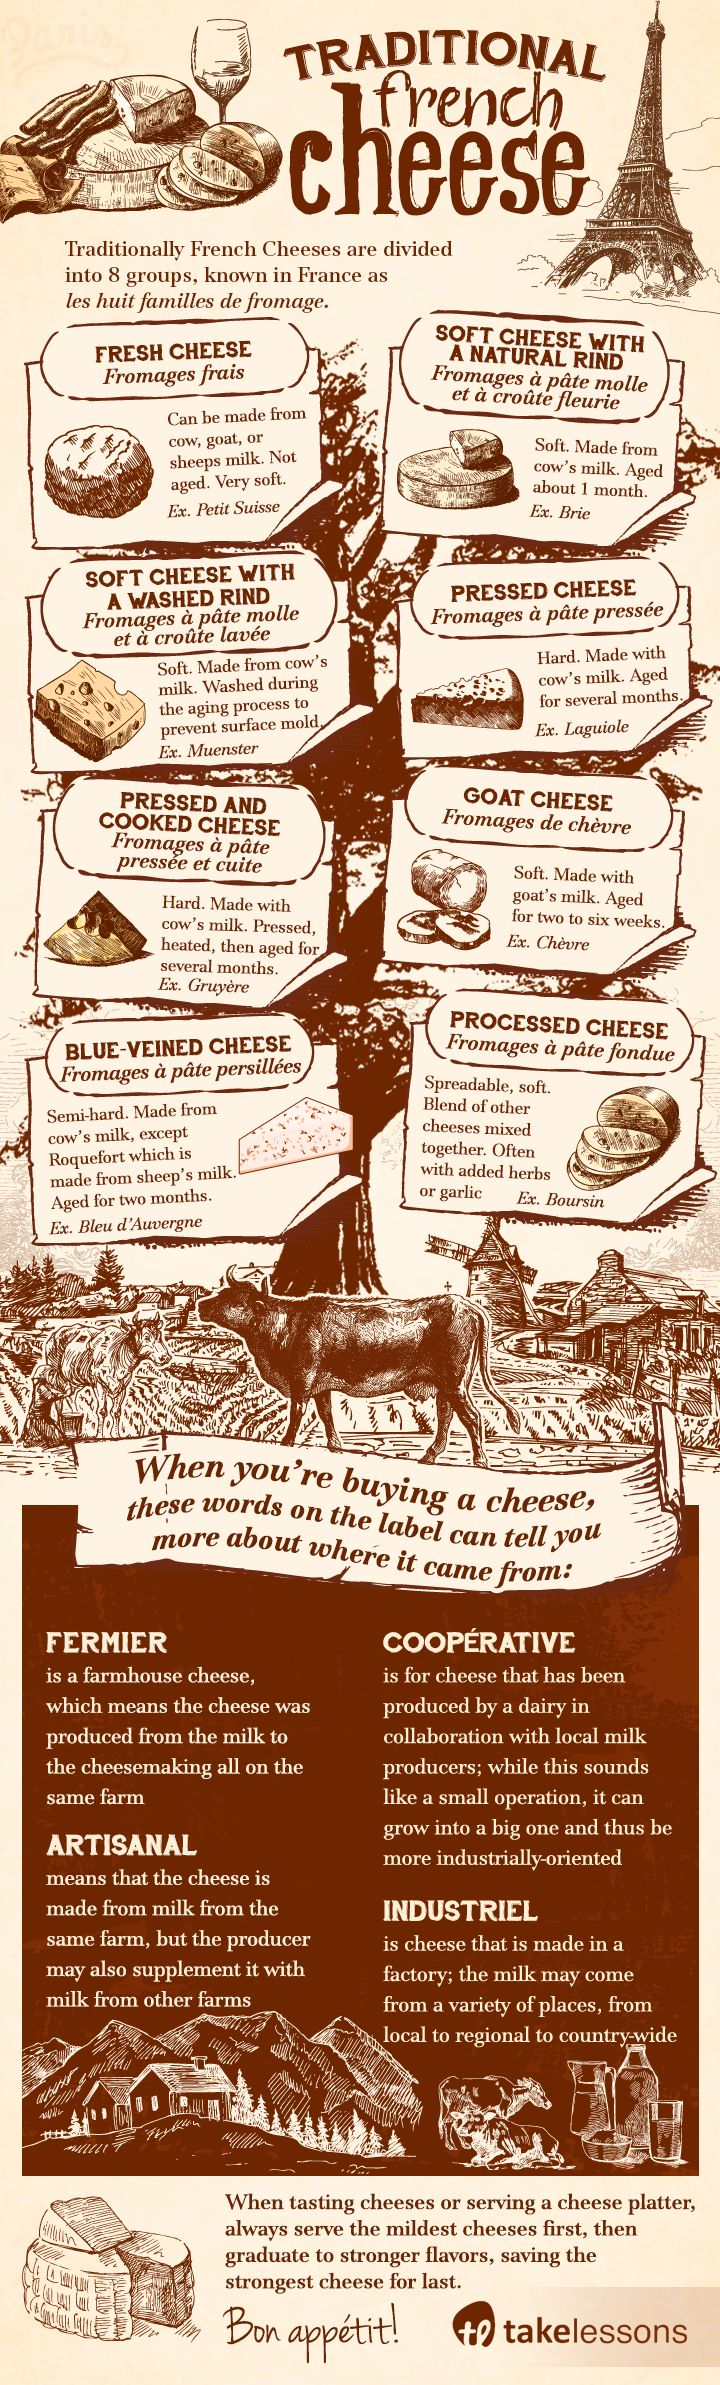 Everything You Ever Wanted to Know About French Cheese http://takelessons.com/blog/french-cheese-infographic-z04?utm_source=social&utm_medium=blog&utm_campaign=pinterest